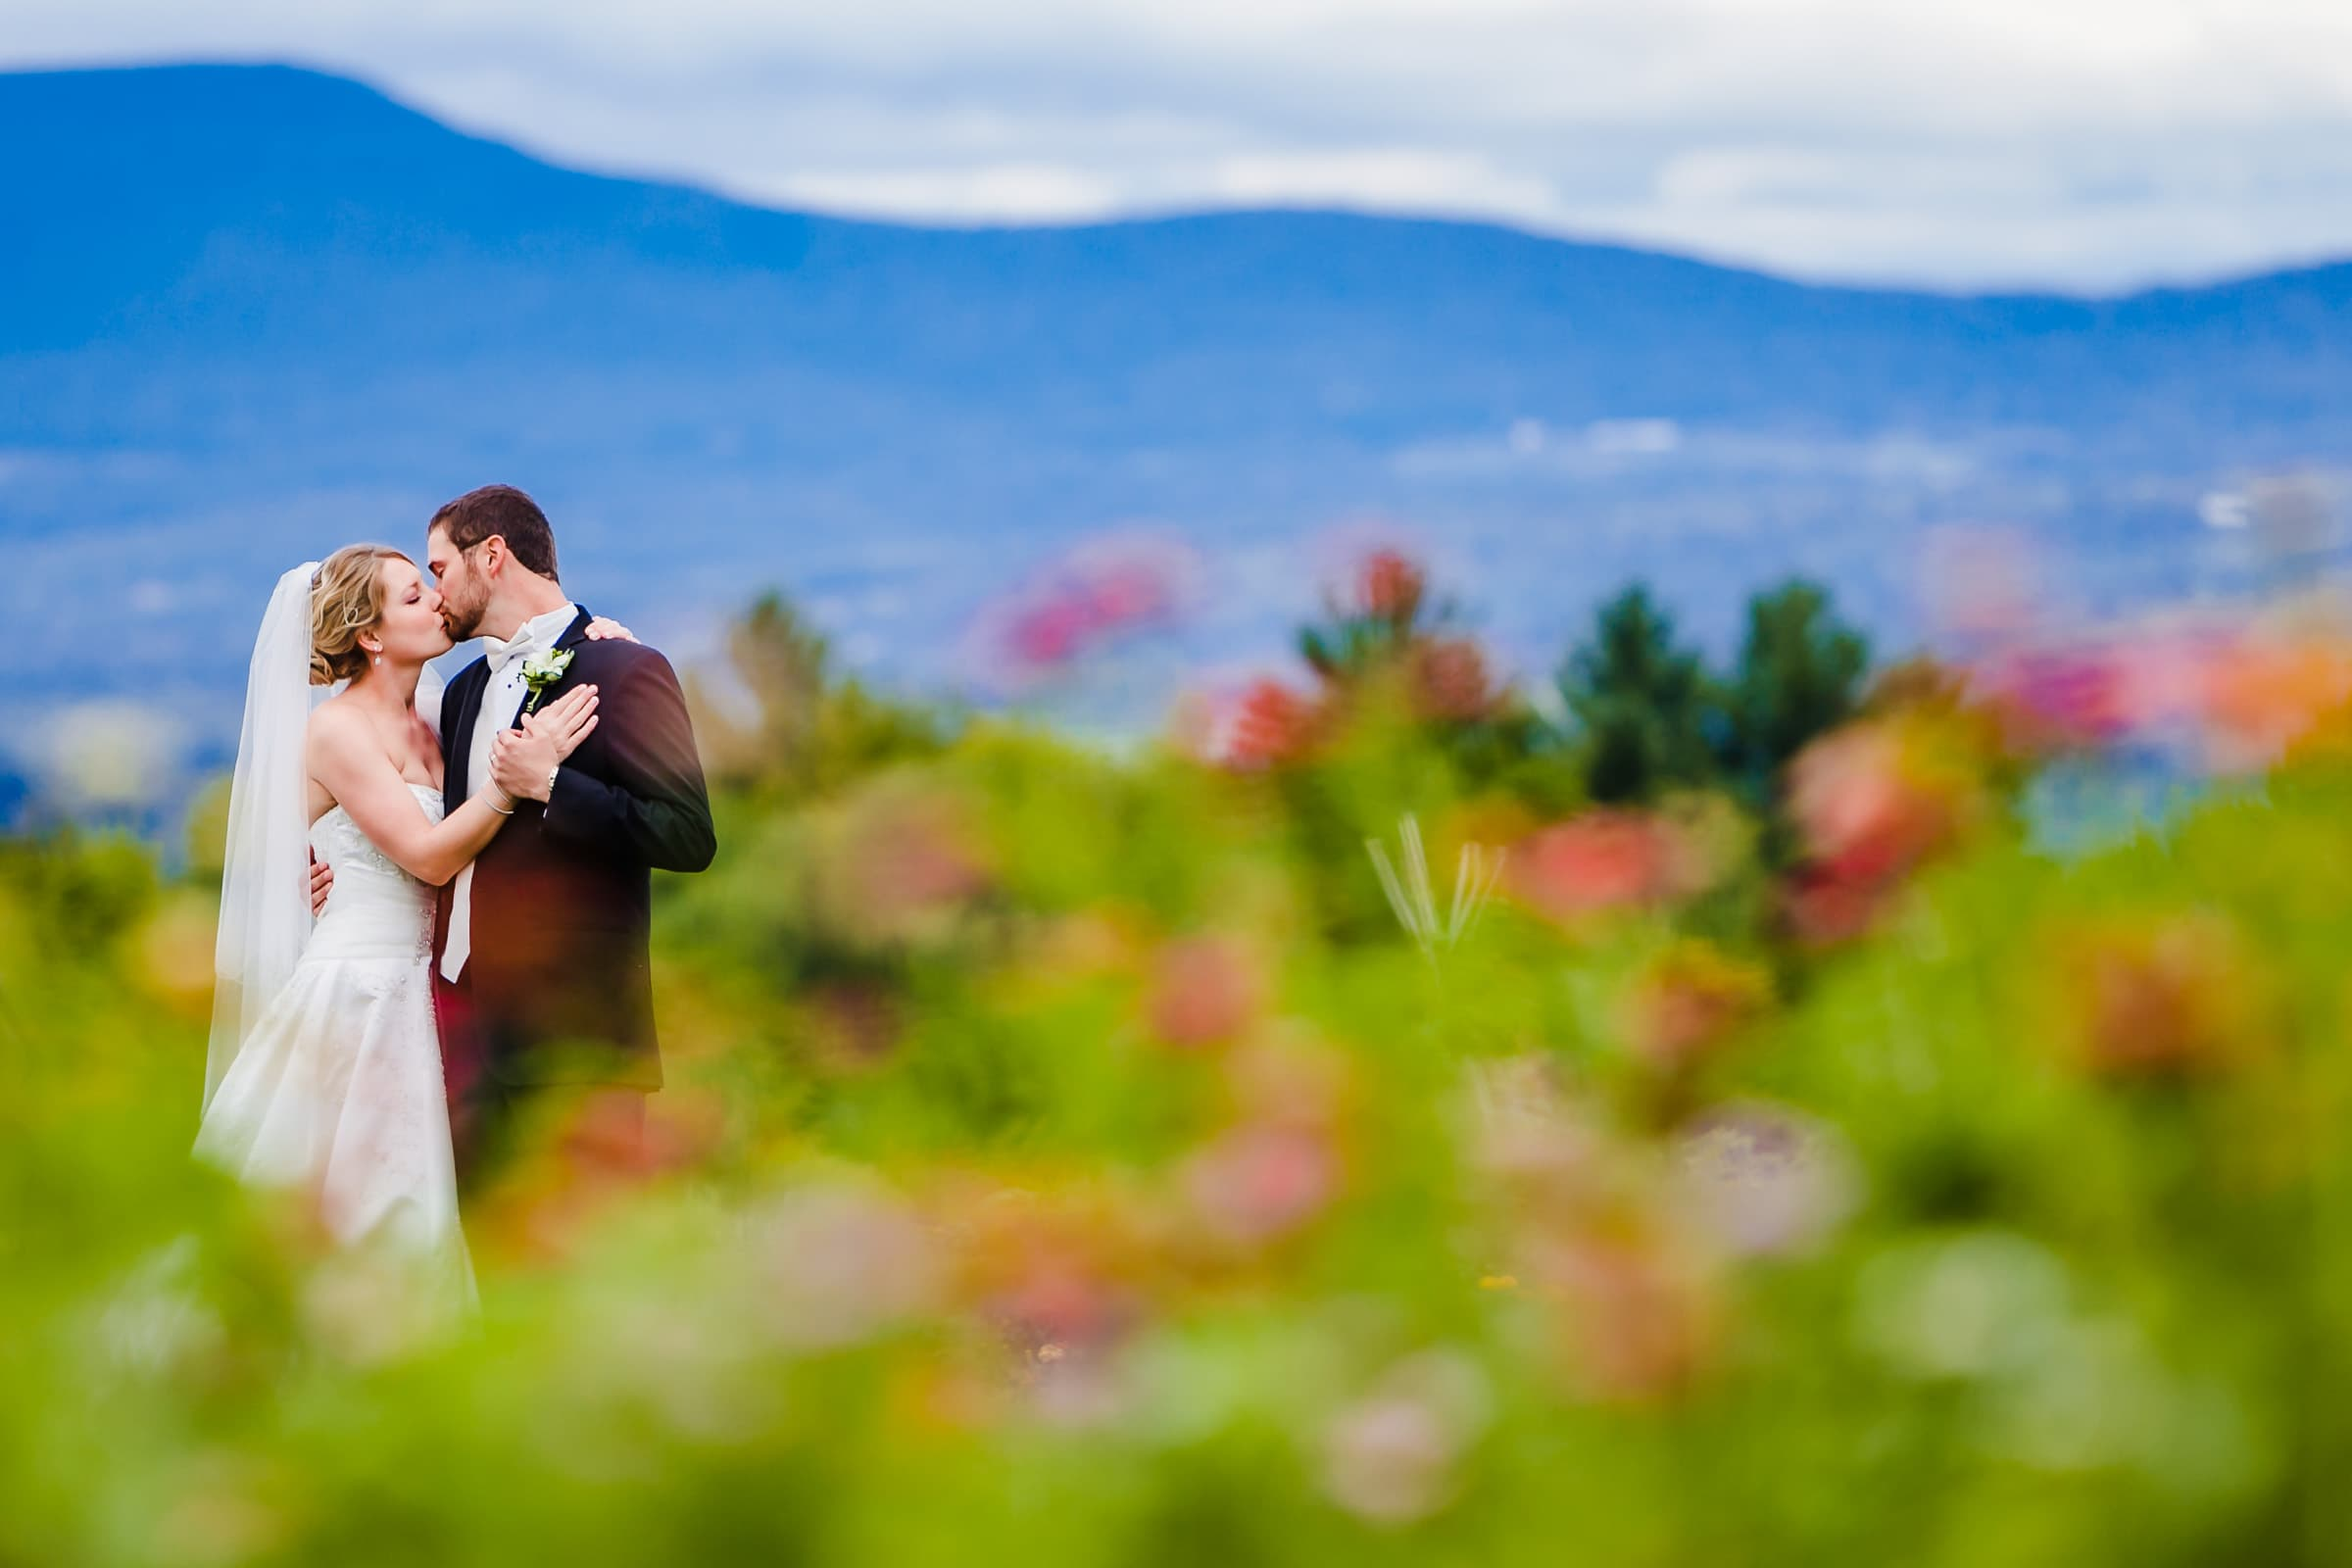 Bride and groom embracing in a flower field following their Trapp Family Lodge wedding ceremony in Stowe, Vermont.